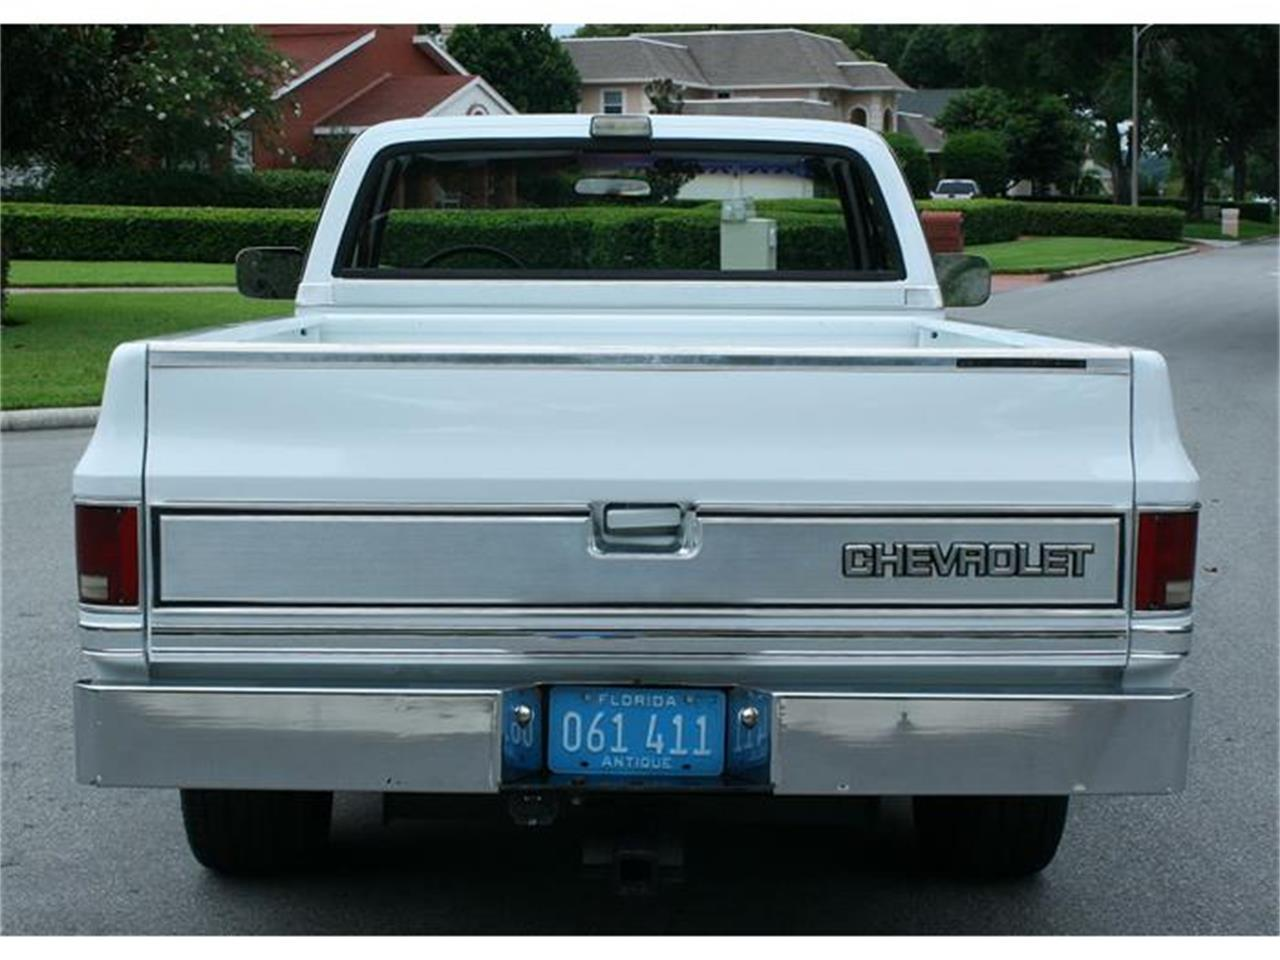 Large Picture of '87 Chevrolet Silverado located in Florida Offered by MJC Classic Cars - IQHJ